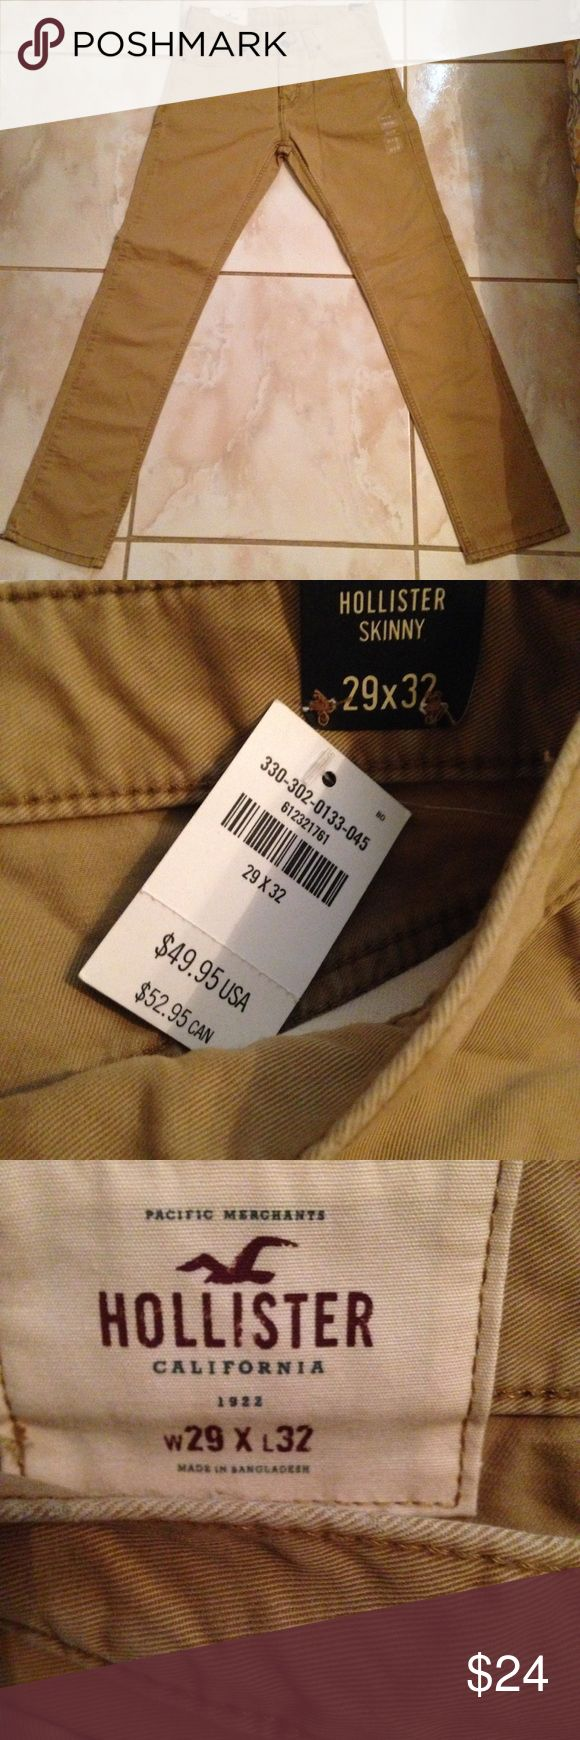 Hollister Khaki skinny jean 29 x 32 (New) This jean is new it has never been worn and still has tags. Hollister Jeans Skinny